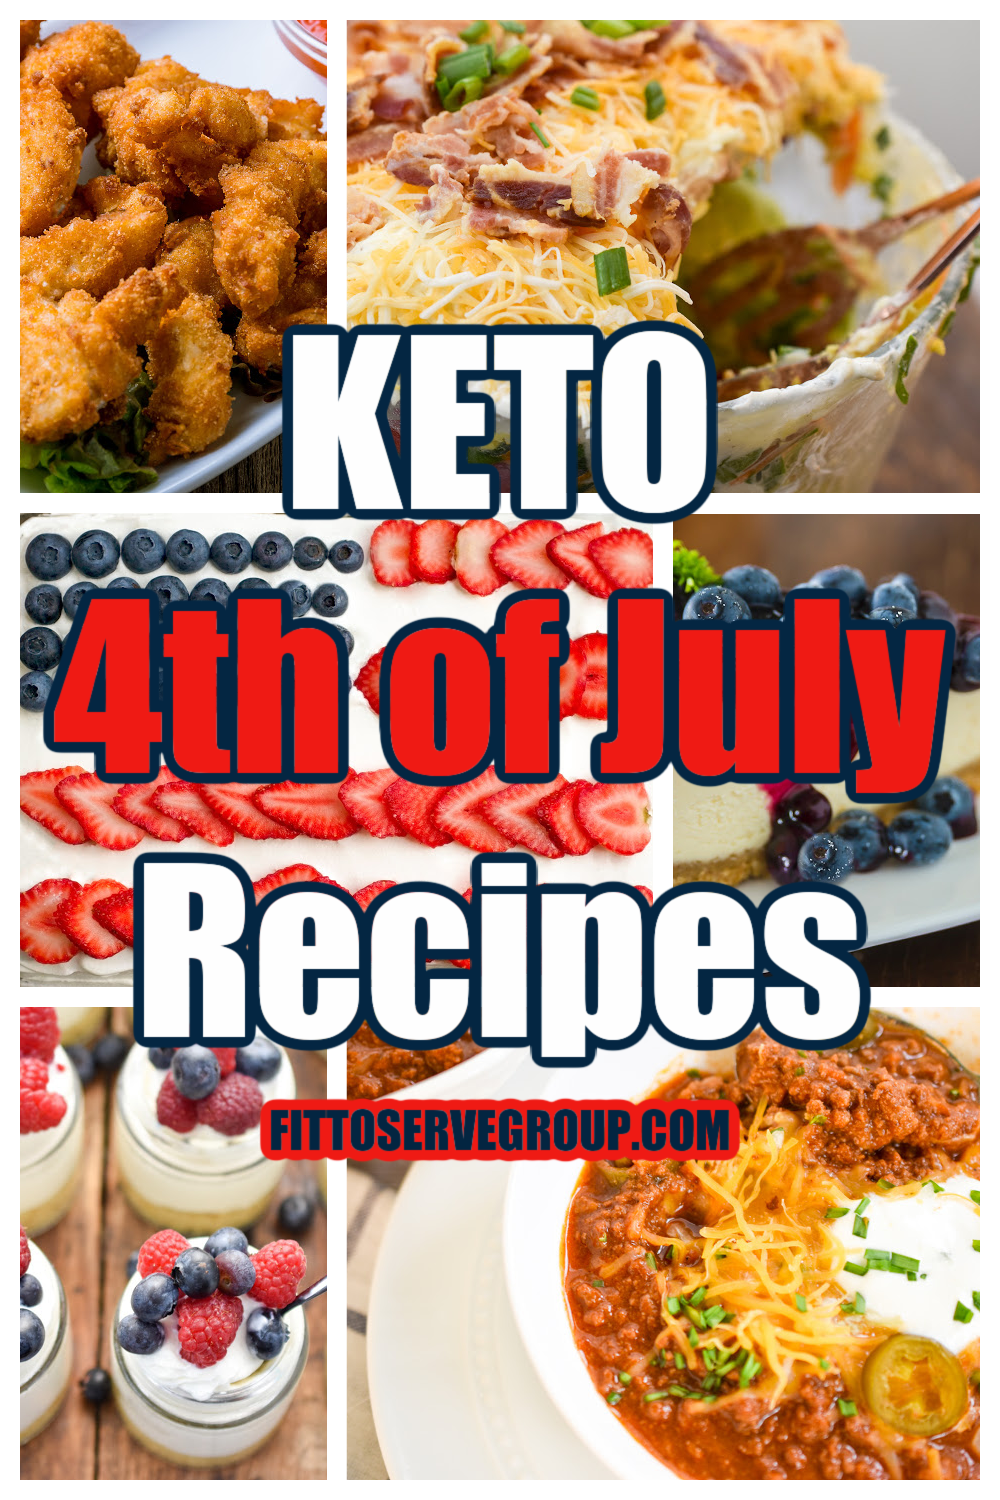 keto 4th of July recipes collage picture